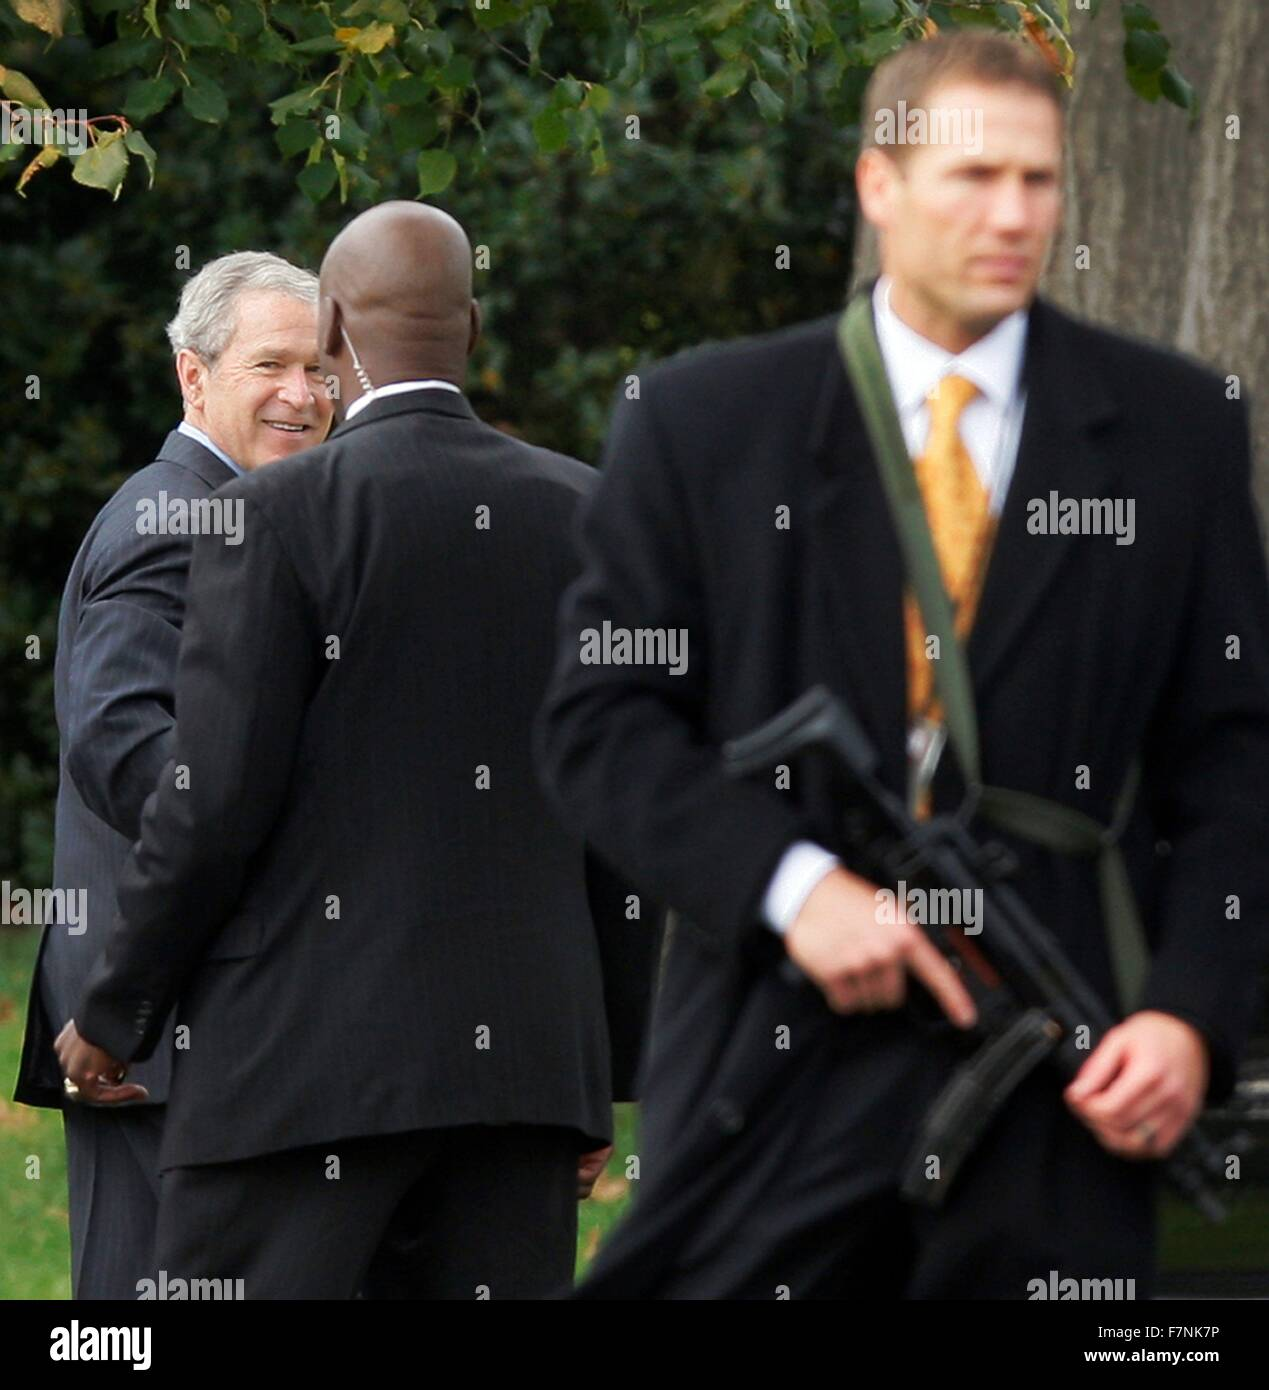 President George W Bush is guarded by Secret Service Agents during his first term as President 2004 Stock Photo